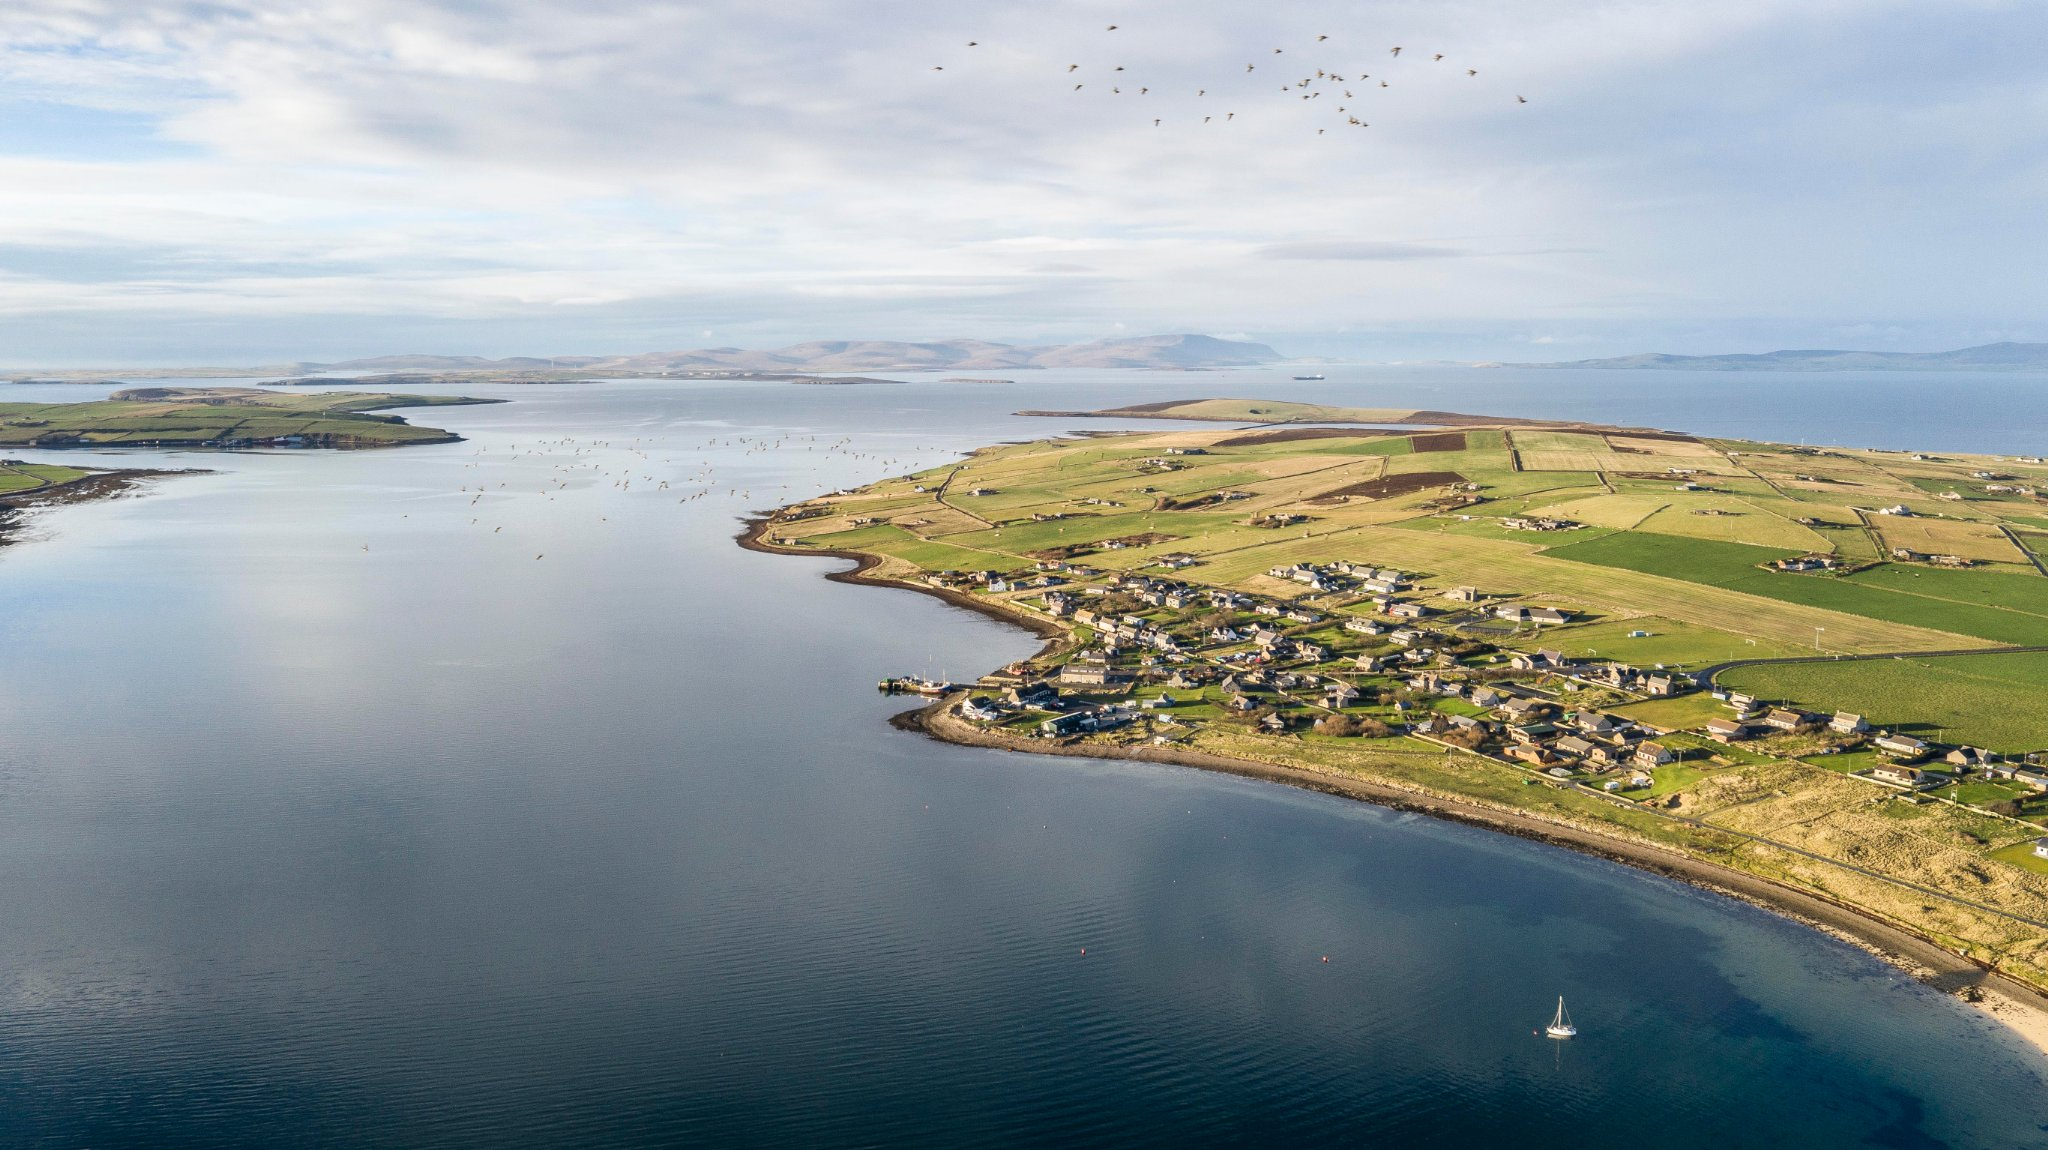 View over Burray and Scapa Flow - image by Andras Farkas